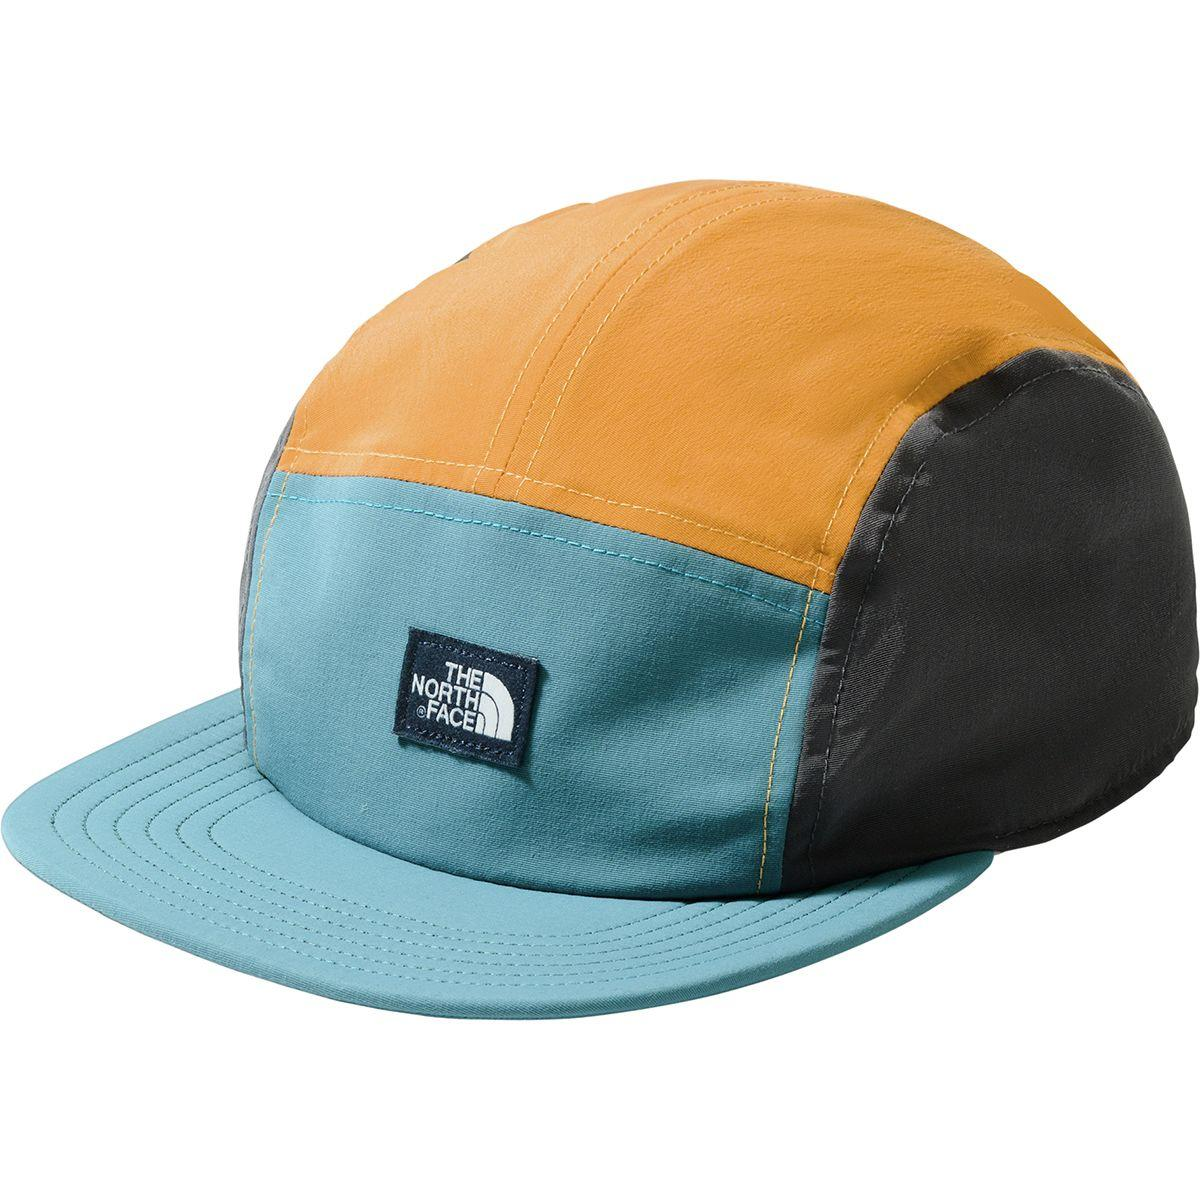 027198932f52d7 Lyst - The North Face Class V 5 Panel Hat in Blue for Men